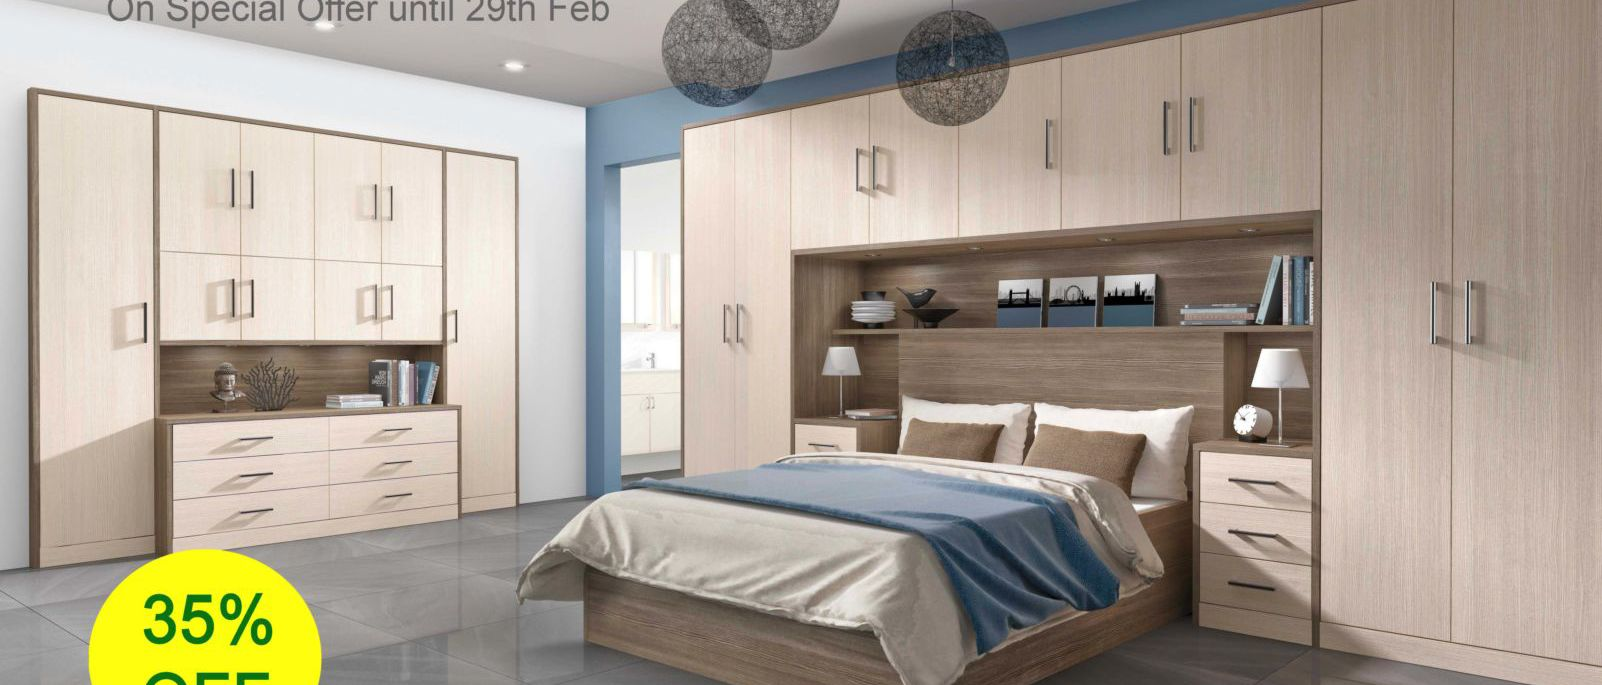 021 Colonial Bedrooms 35% Discount